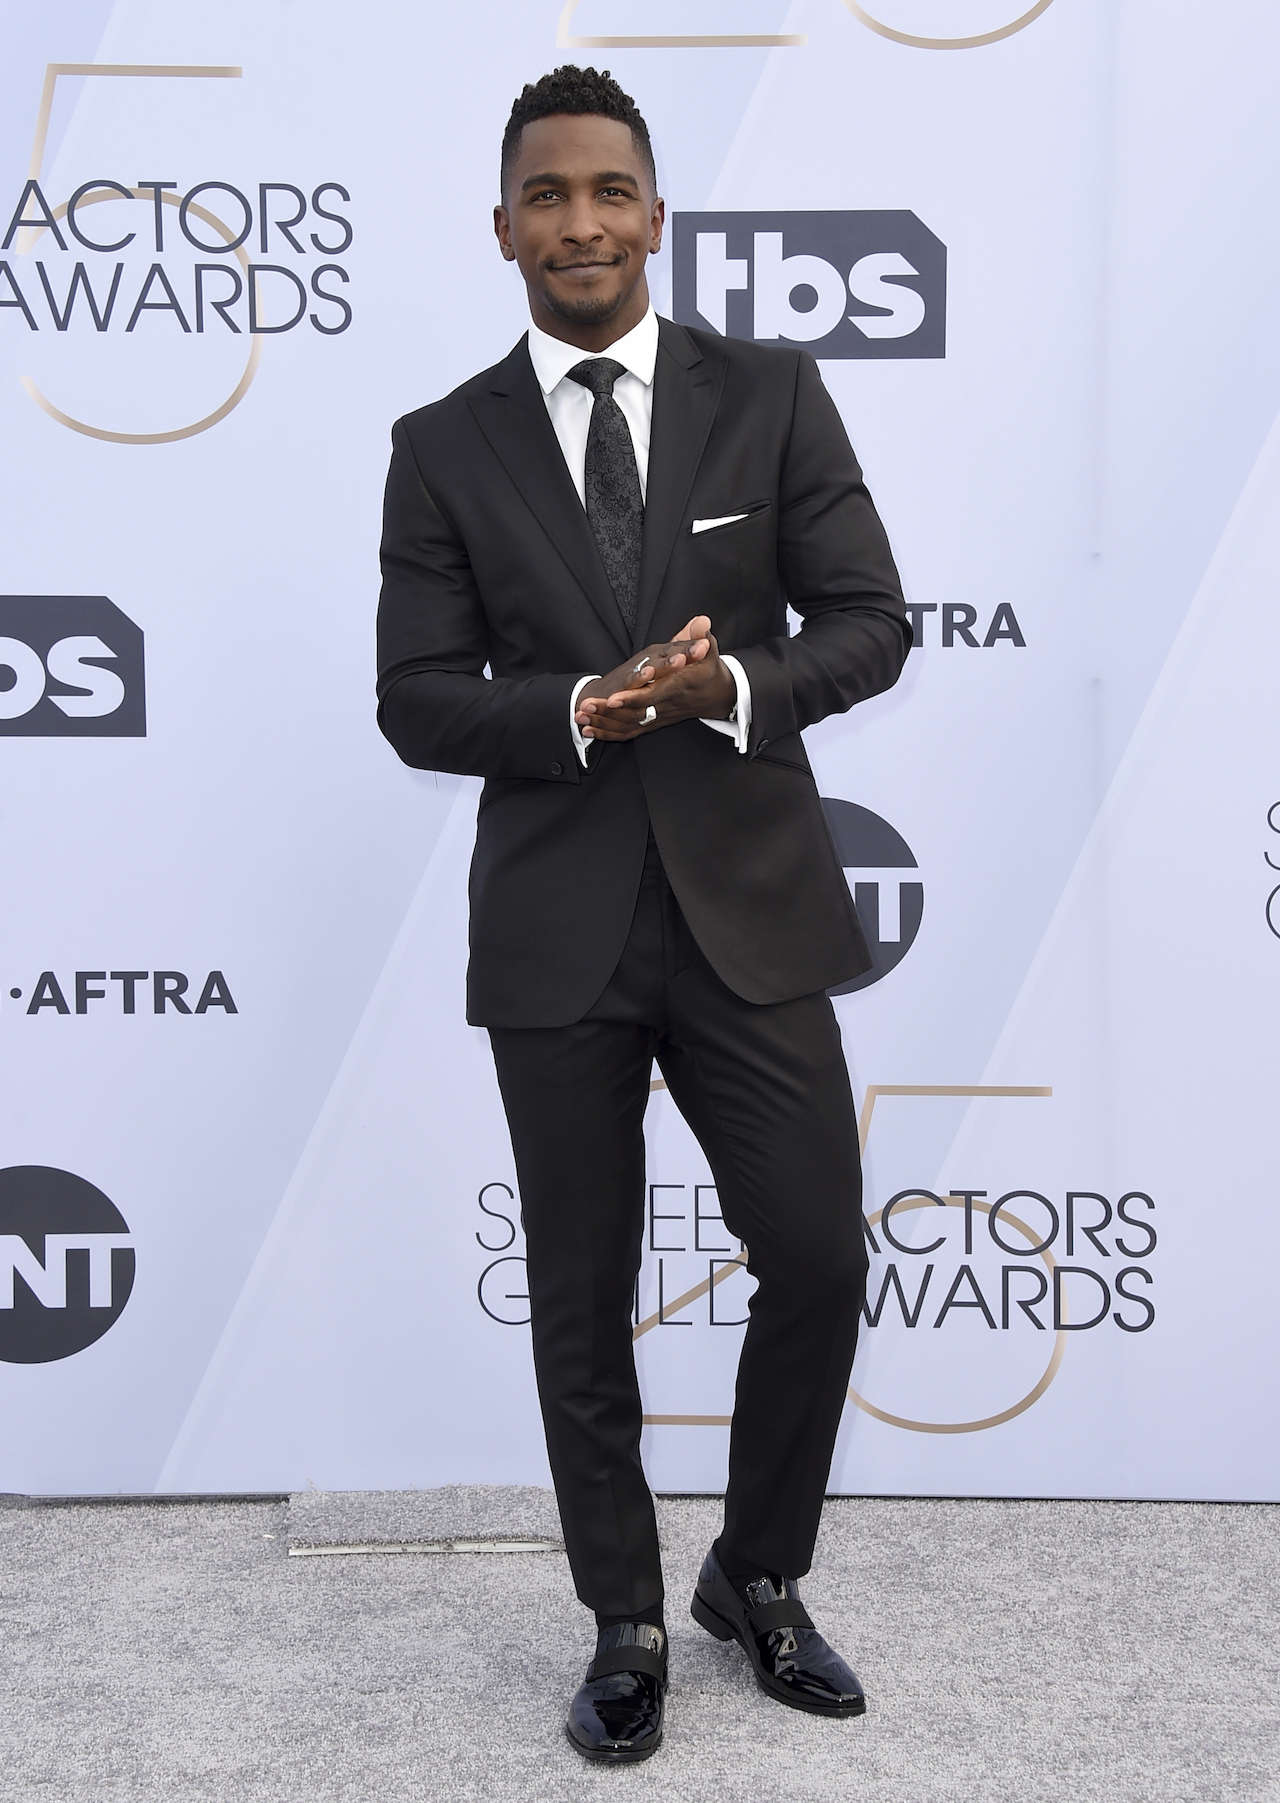 "<div class=""meta image-caption""><div class=""origin-logo origin-image ap""><span>AP</span></div><span class=""caption-text"">Scott Evans arrives at the 25th annual Screen Actors Guild Awards at the Shrine Auditorium & Expo Hall on Sunday, Jan. 27, 2019, in Los Angeles. (Jordan Strauss/Invision/AP)</span></div>"